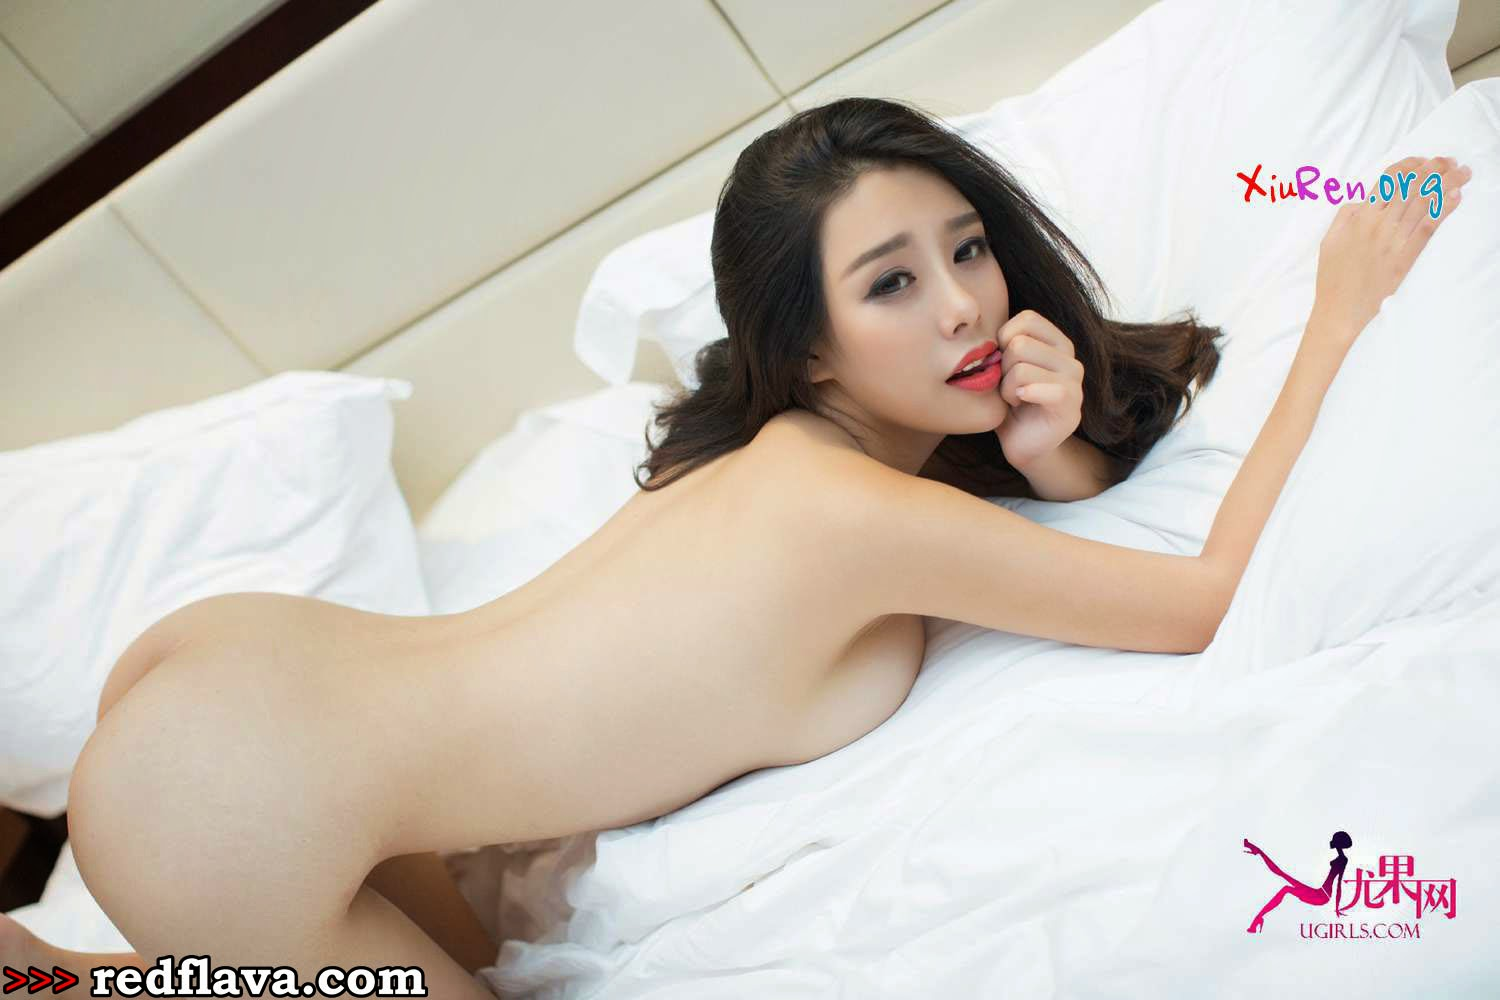 Xvideo hot sixy chines fucking great